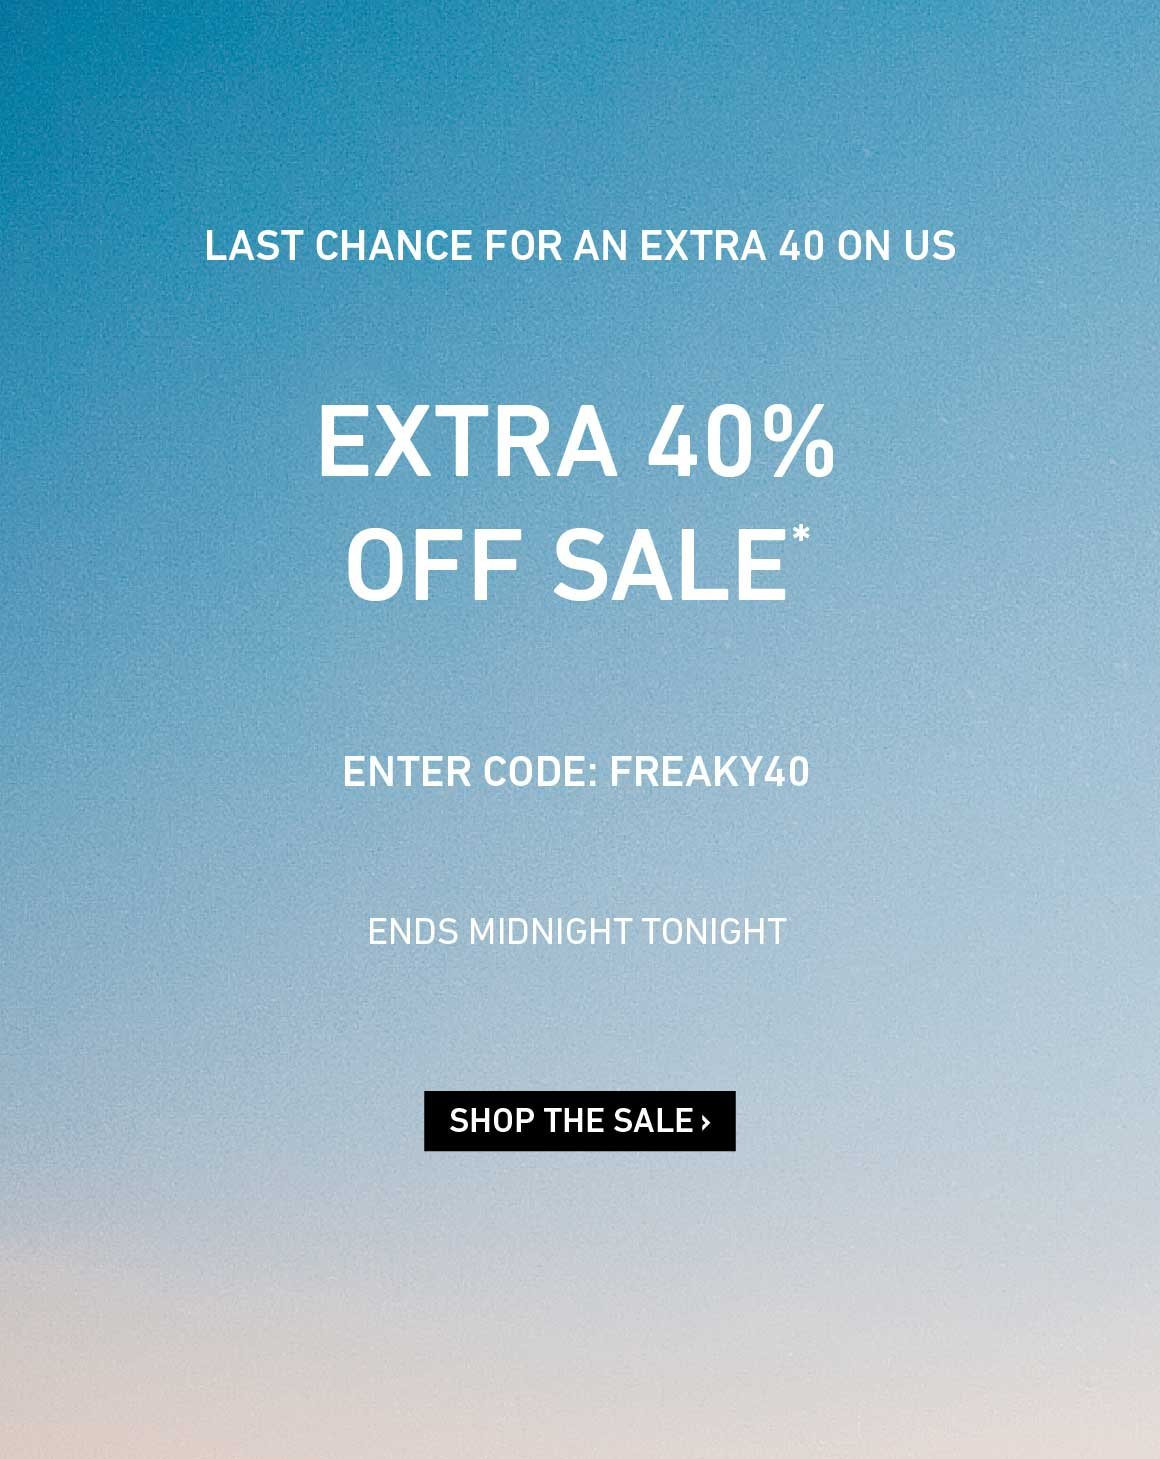 Extra 40% Off Sale Ends Tonight. Enter Code: FREAKY40